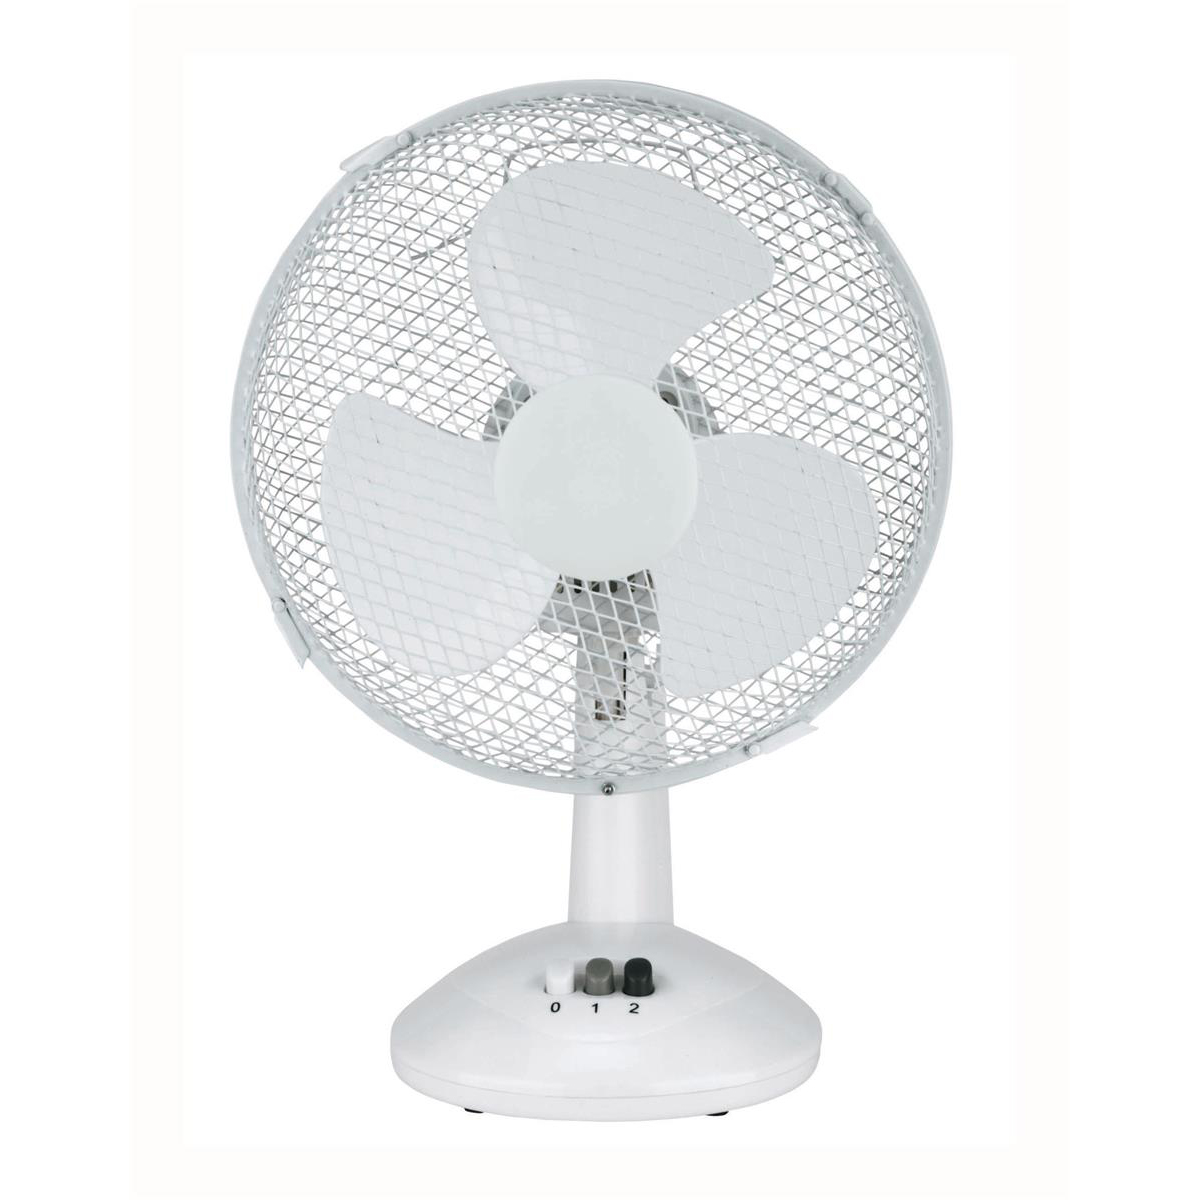 5 Star Facilities Desk Fan 9 Inch 90deg Oscillating with Tilt & Lock 2-Speed H320mm w/Cable 1.25m White